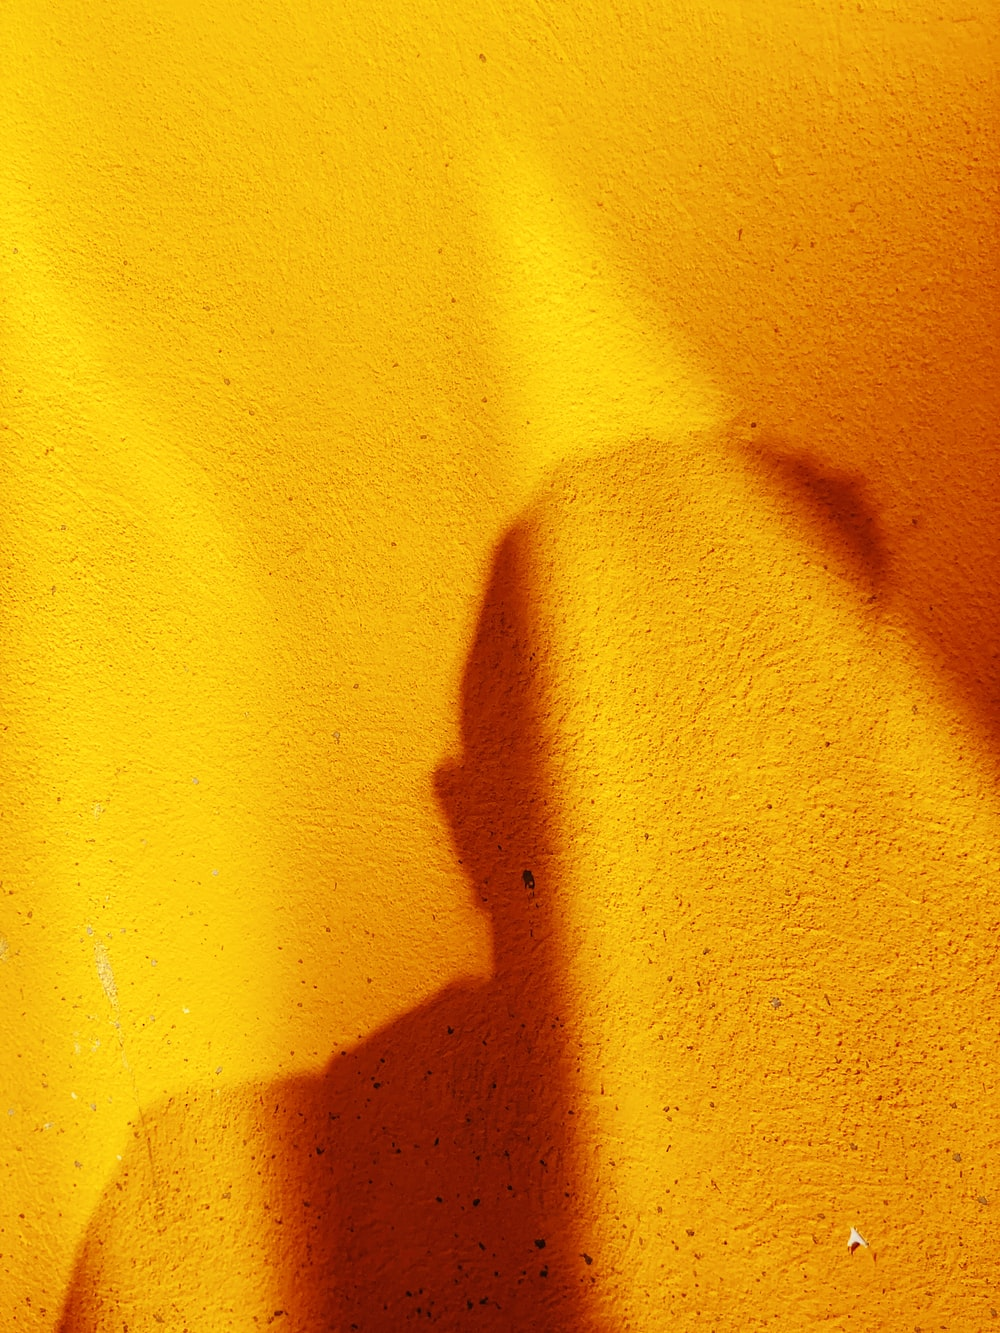 shadow of person on yellow wall